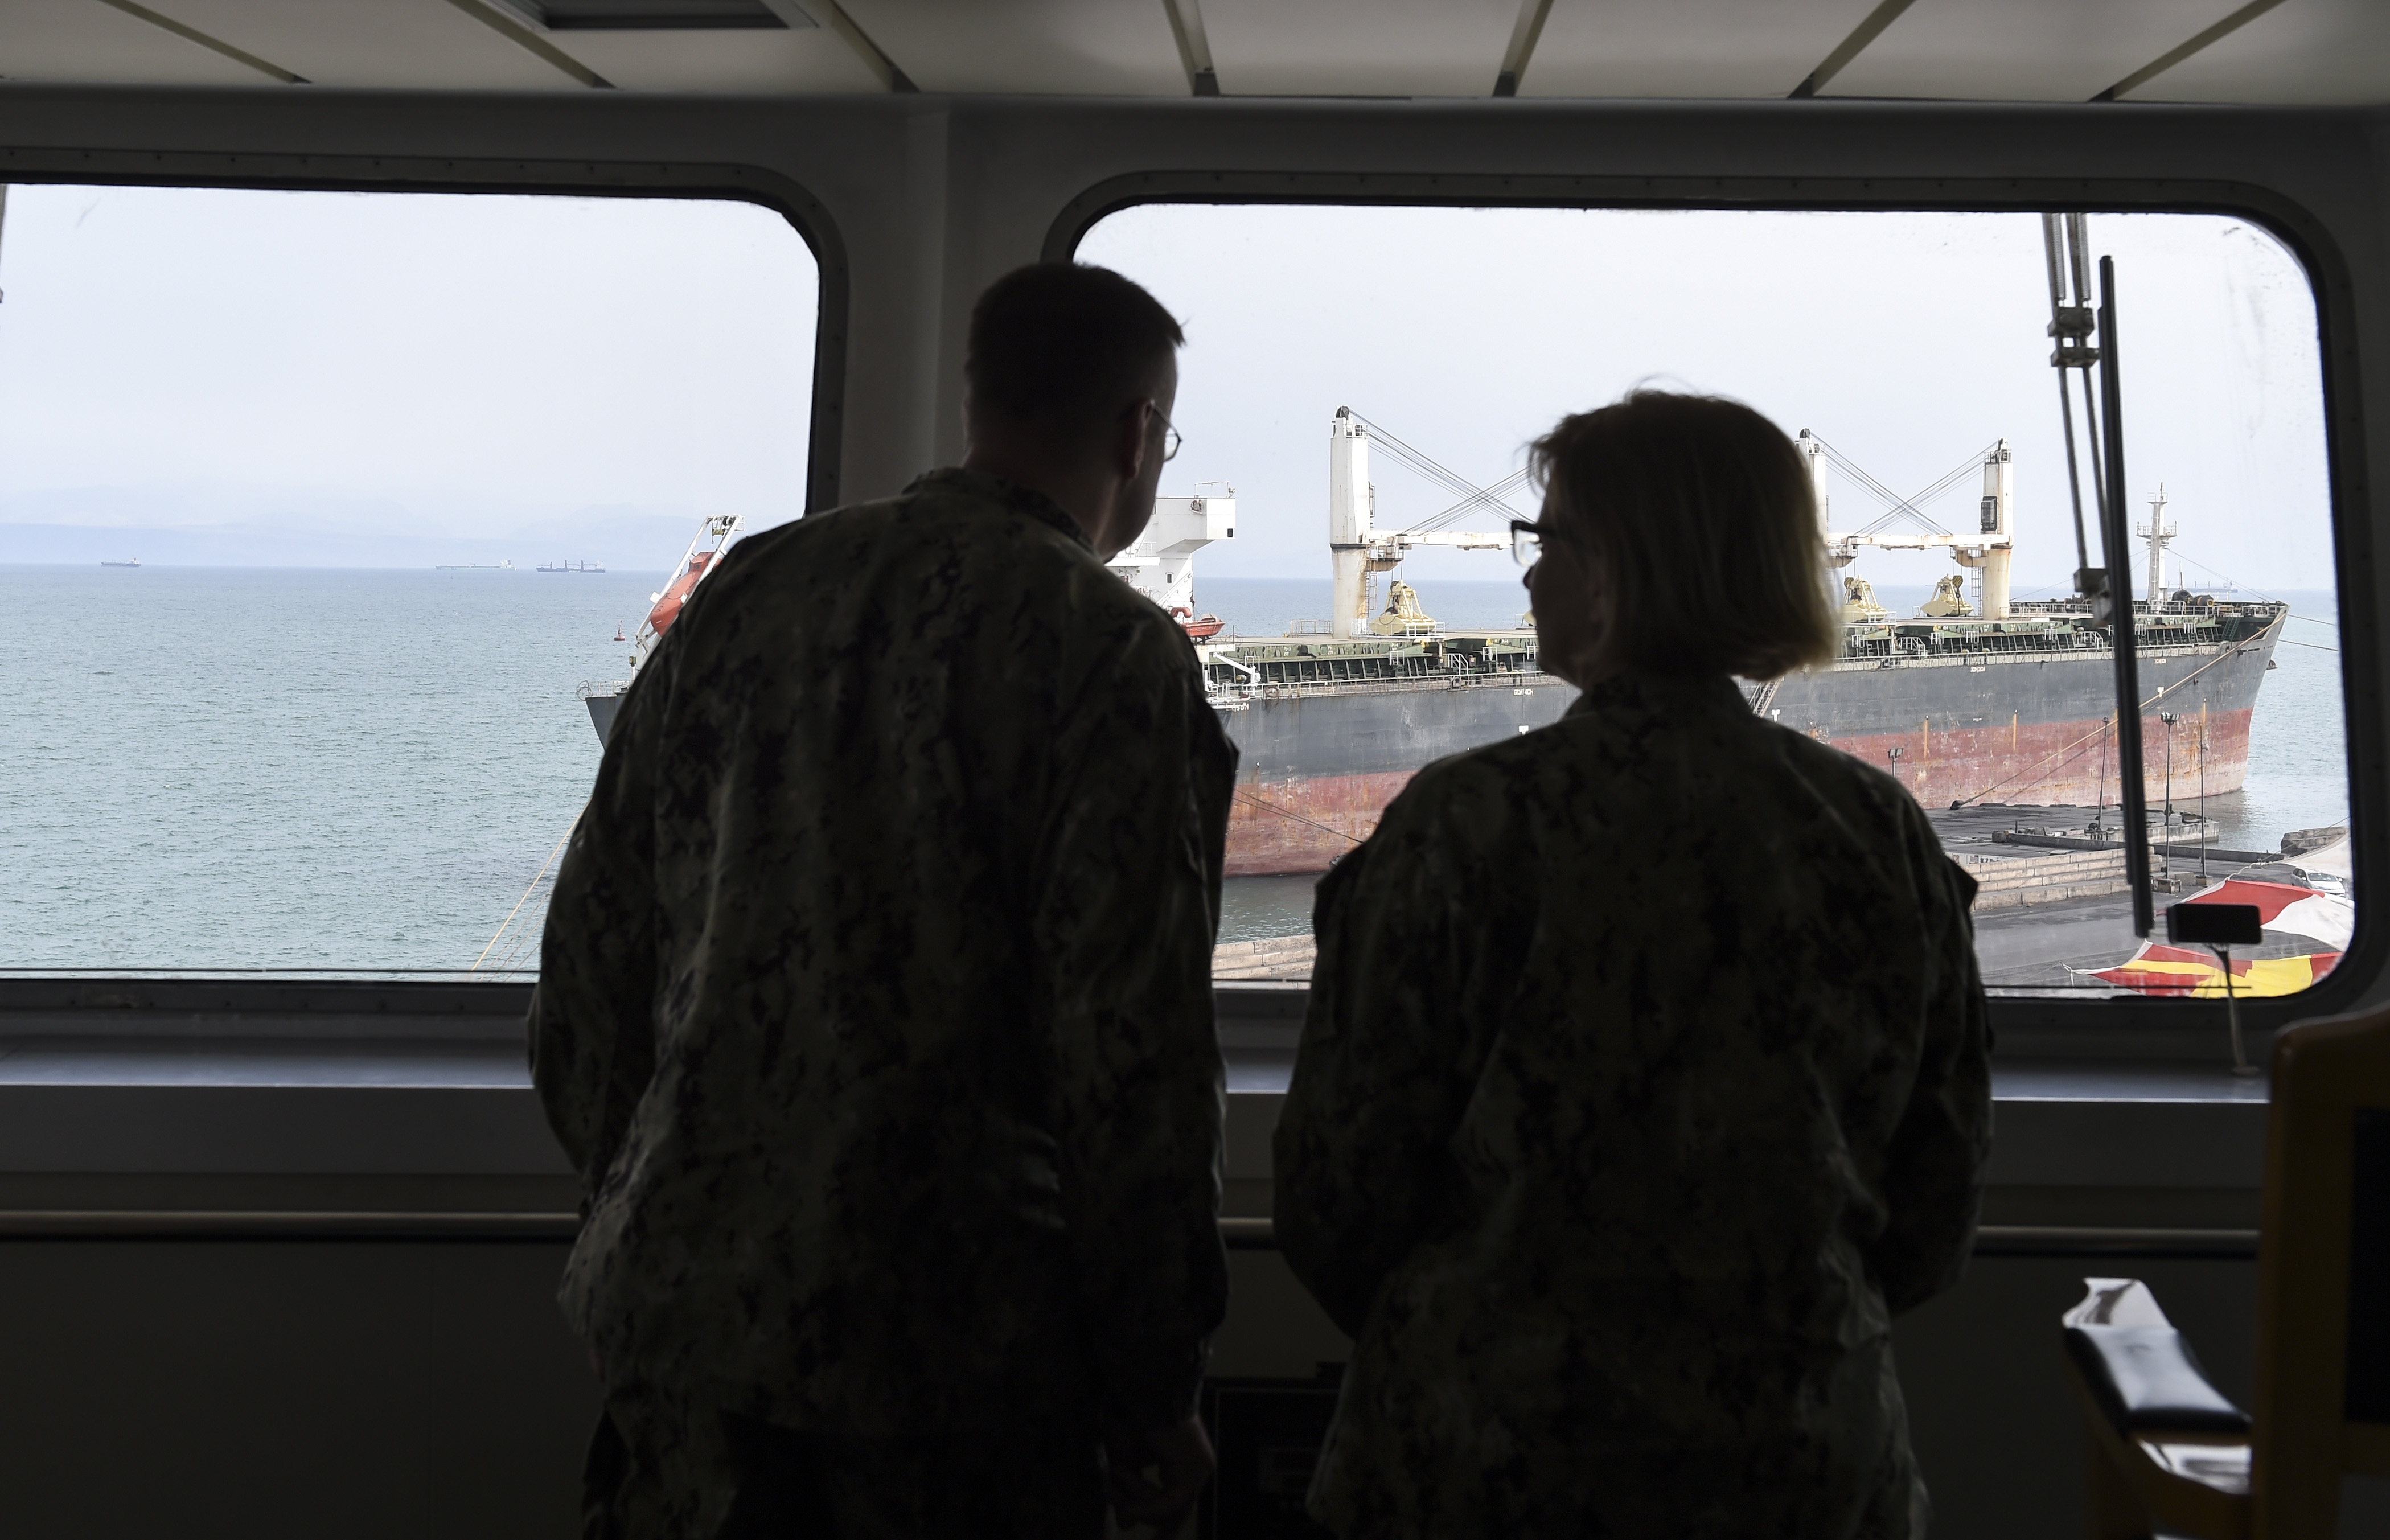 U.S. Navy Sailors assigned to the Expeditionary Medical Facility at Camp Lemonnier look out a window at ships in the Port of Djibouti, August 28, 2017. Medical personnel from Camp Lemonnier visited the Ark Peace and received a tour from Chinese medical personnel to highlight the ship's capabilities. (U.S. Air Force photo by Staff Sgt. Eboni Prince)